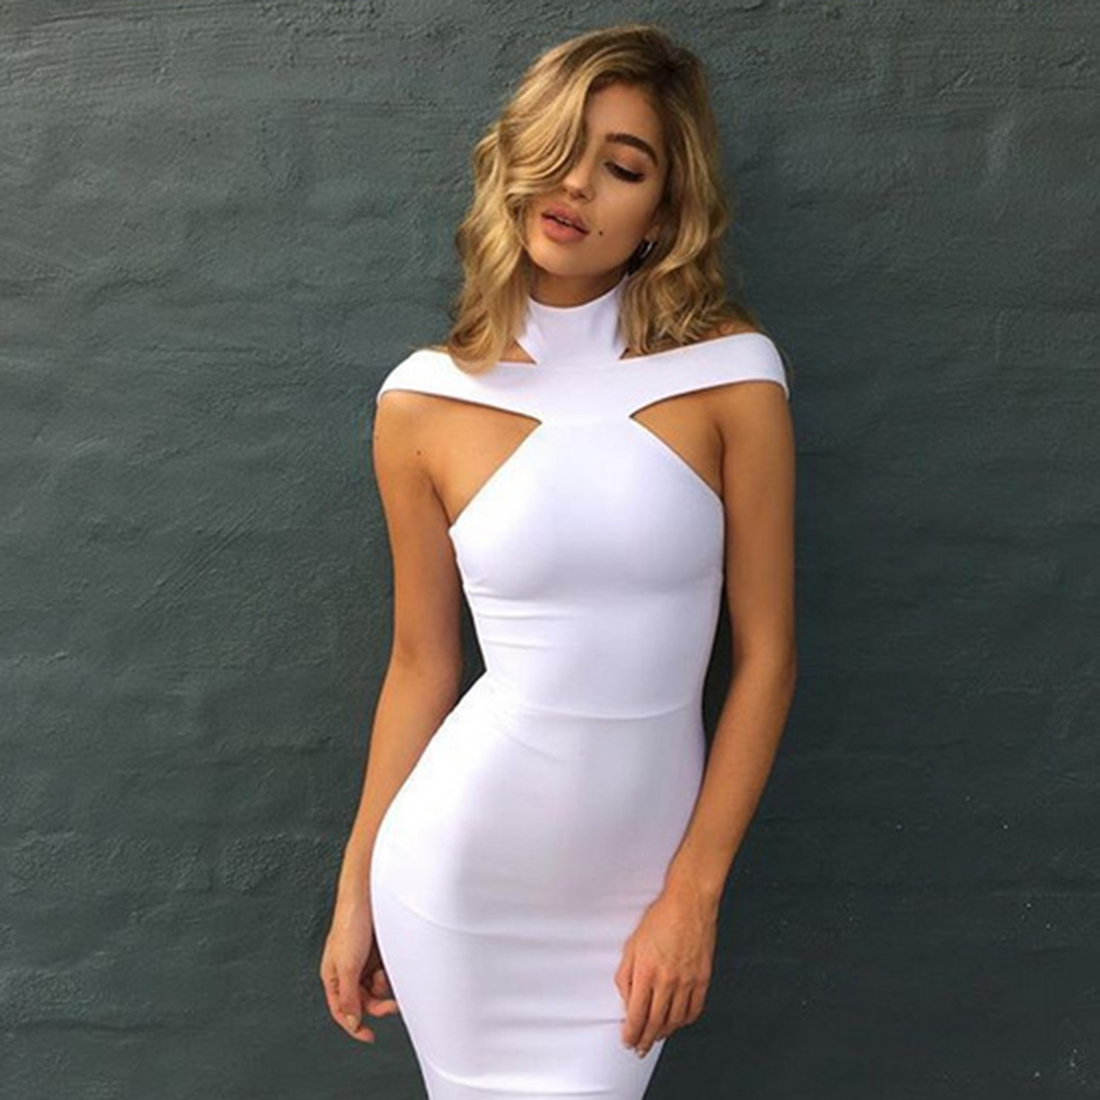 Hot New Women Fashion   Cocktail   Party   Dress   Sexy Backless Halter Cut Out Sleeveless Bodycon Bandage Midi Vestidos Female Clothes